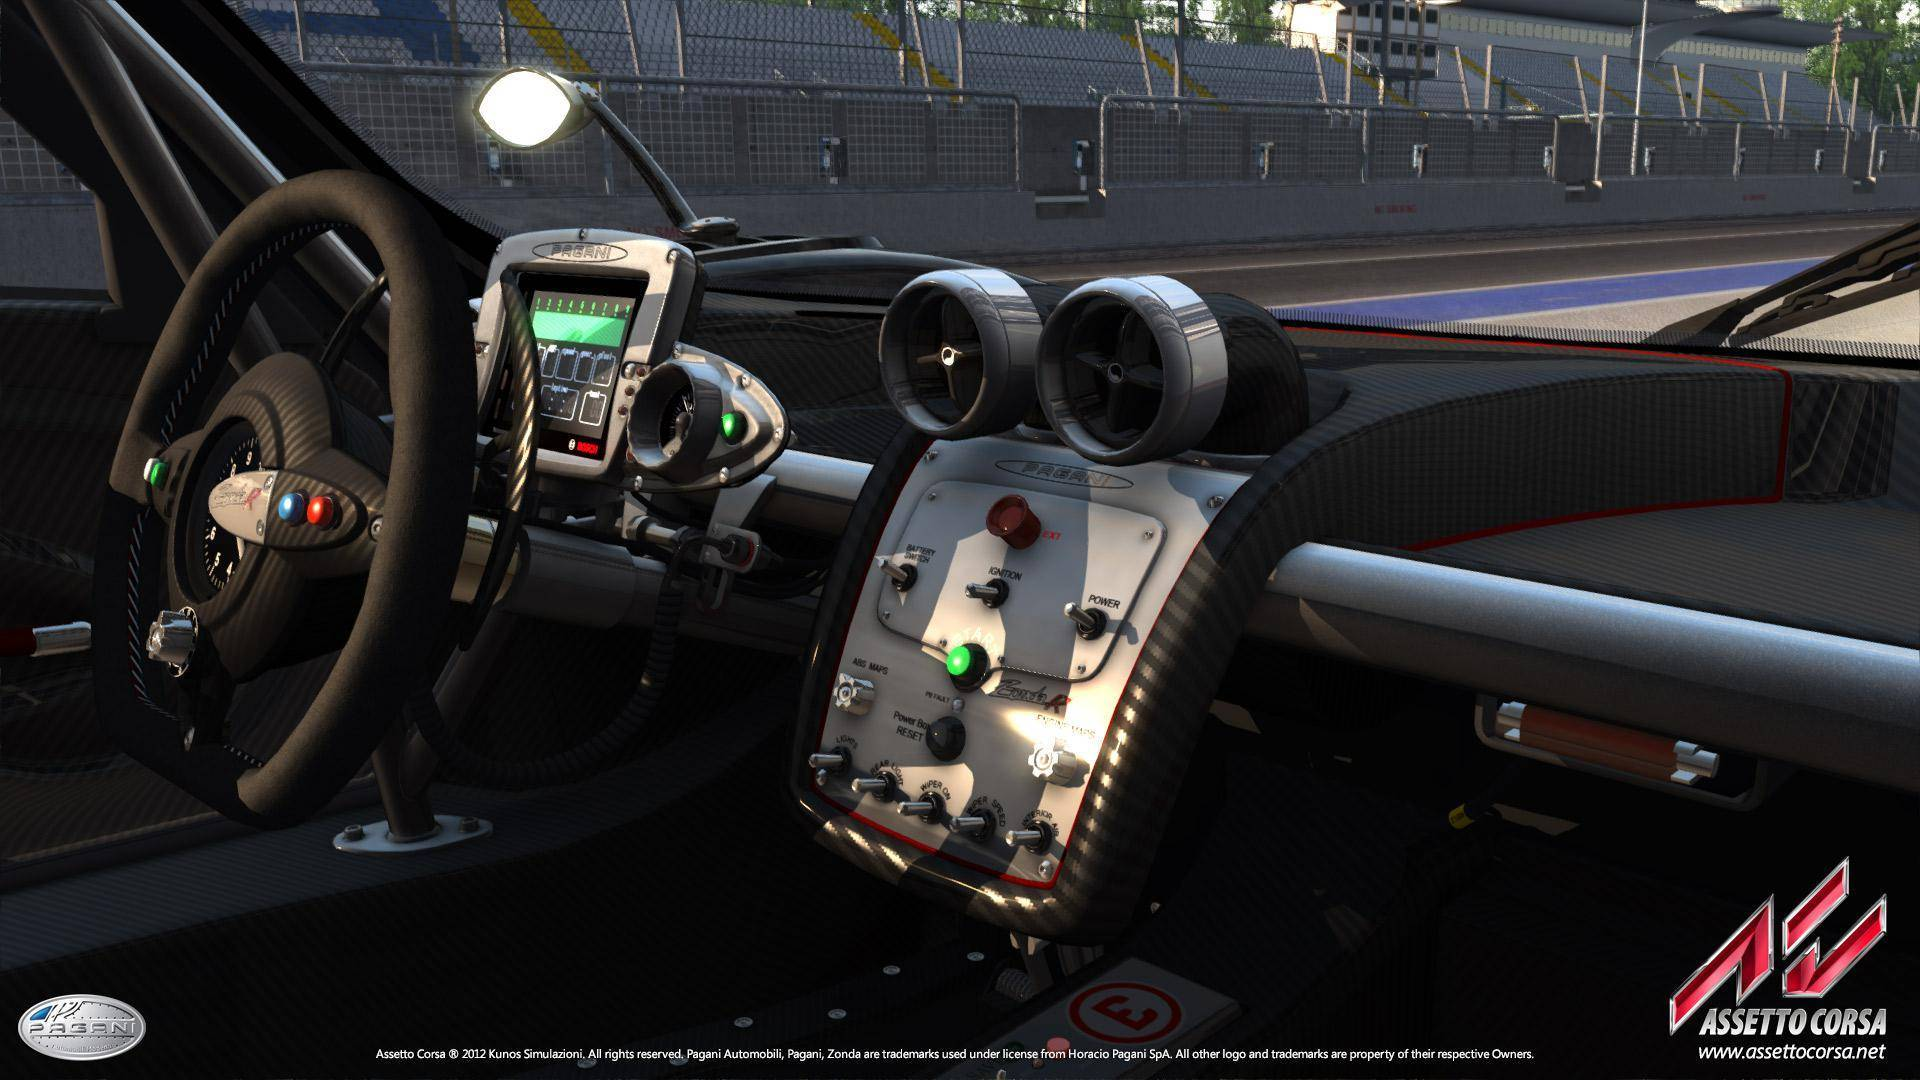 Article title about Assetto Corsa